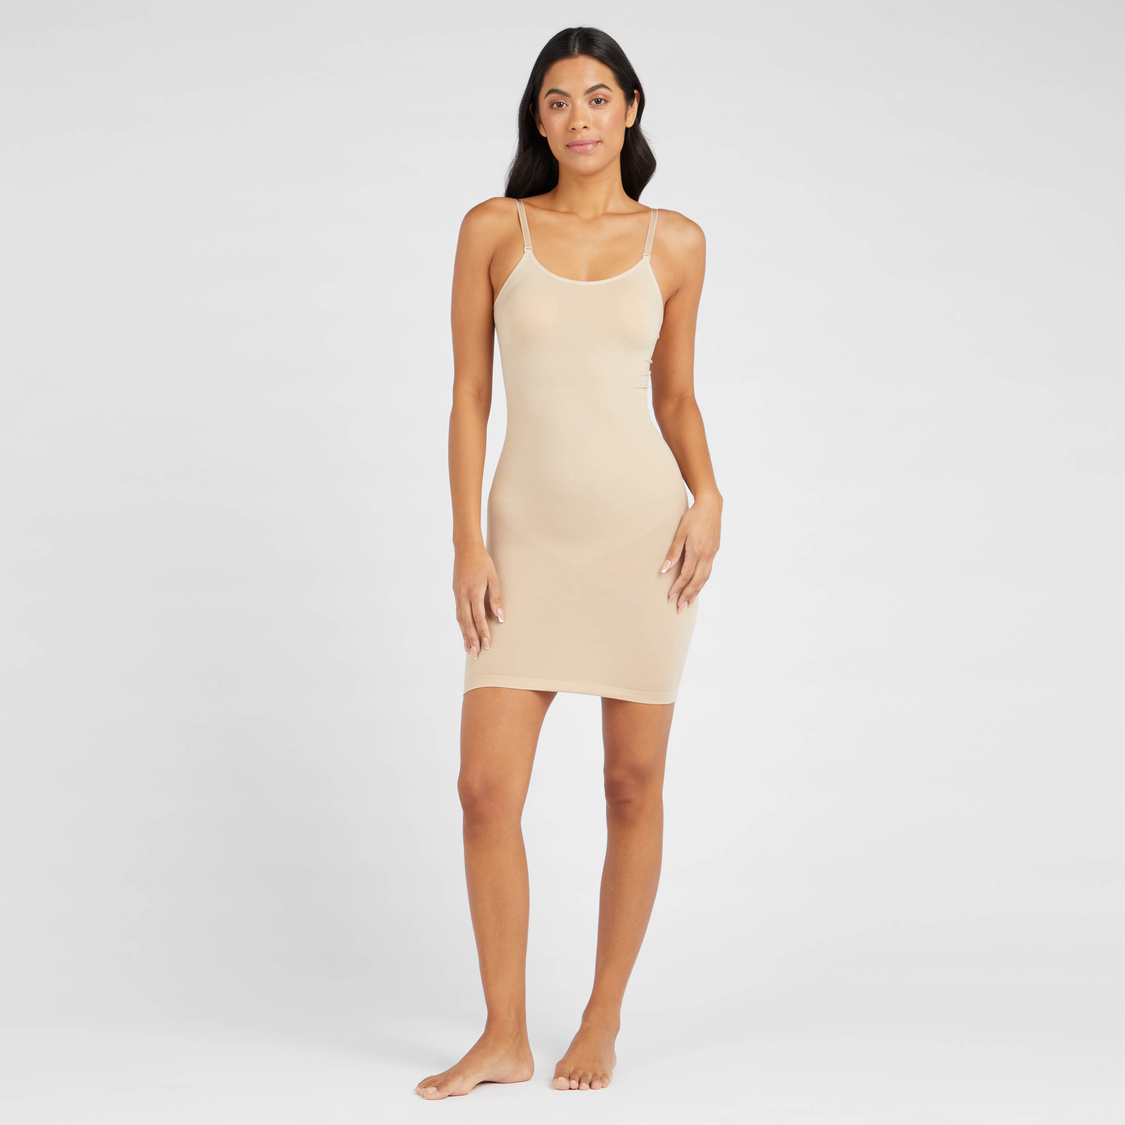 Textured Shaping Bodysuit with Scoop Neck and Adjustable Straps